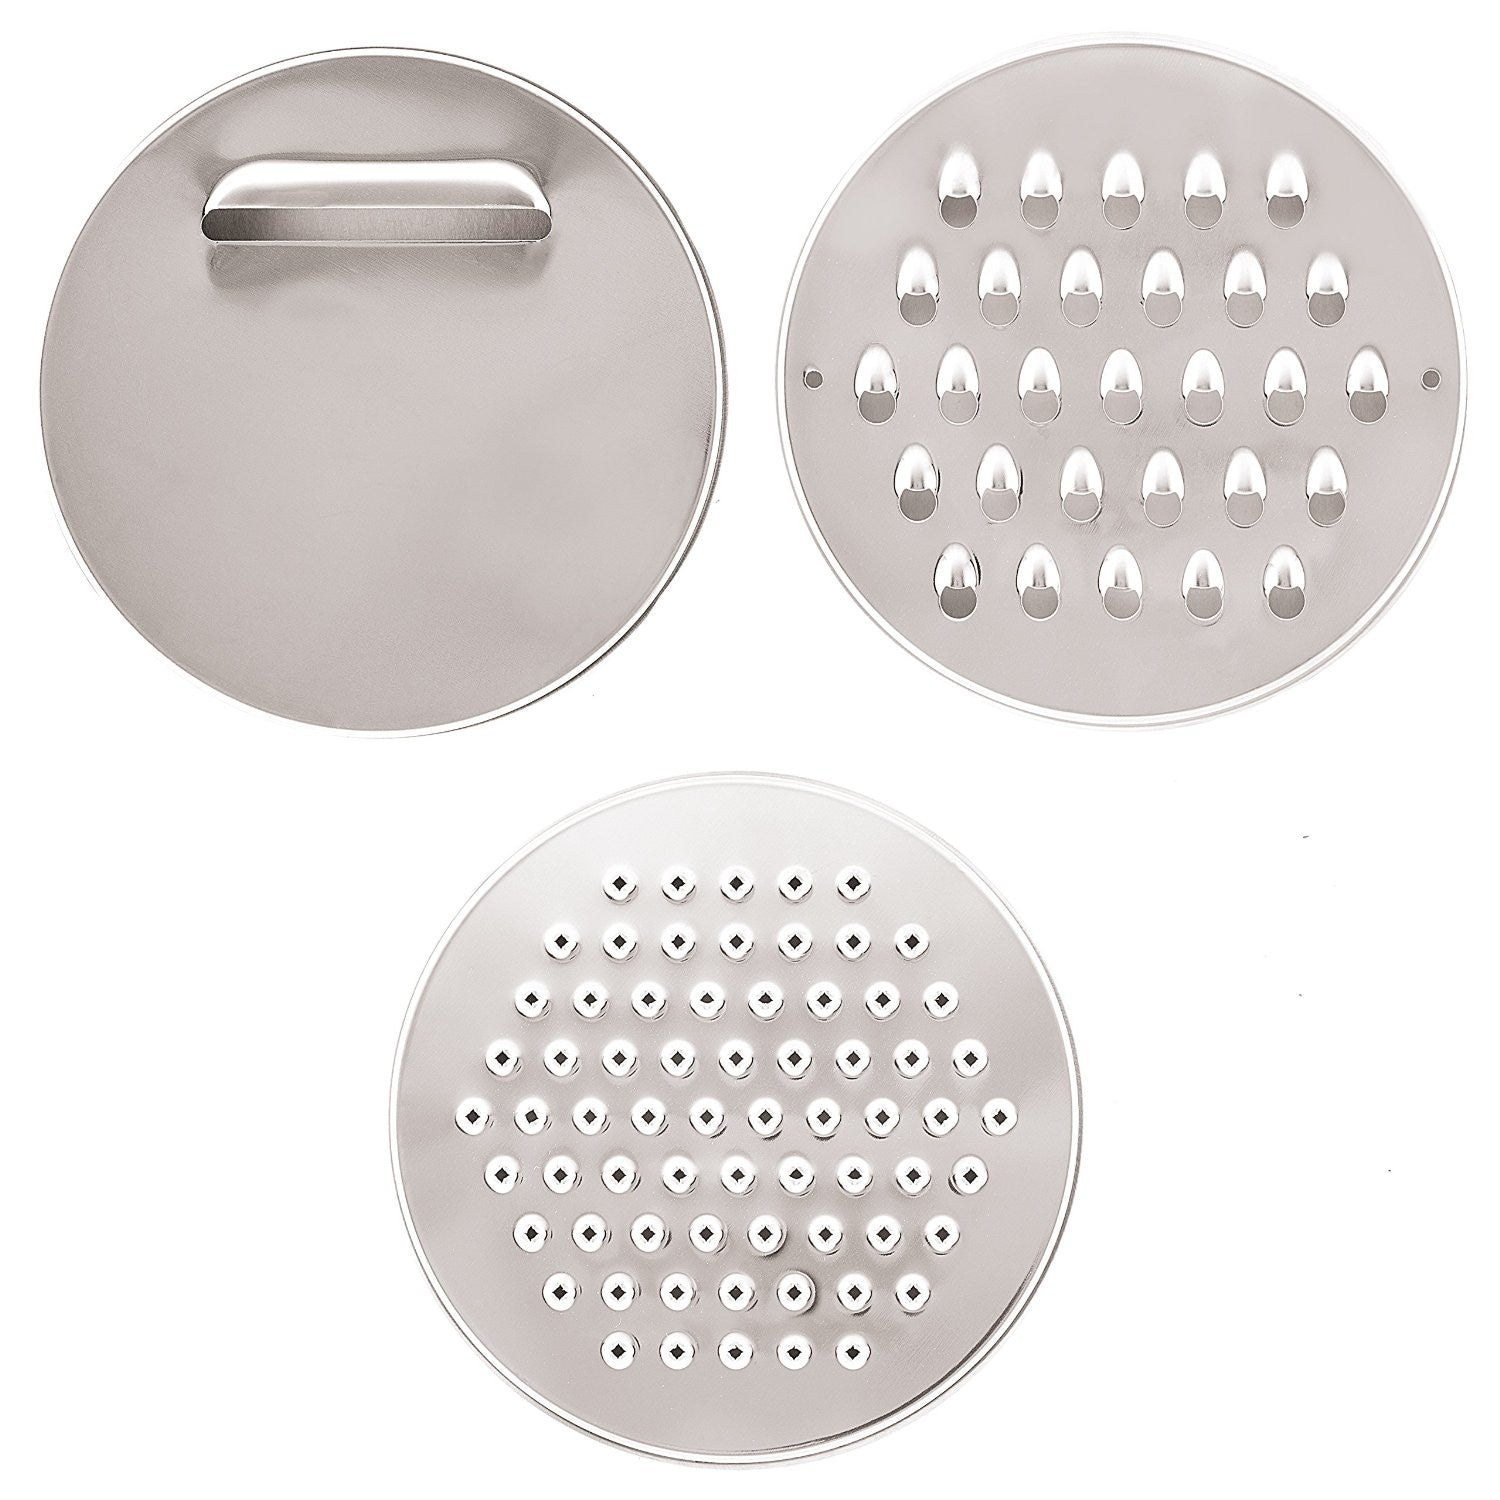 Stainless Steel Non-Slip Mixing Bowls Set with Lids and Graters, Set of 5, Blue